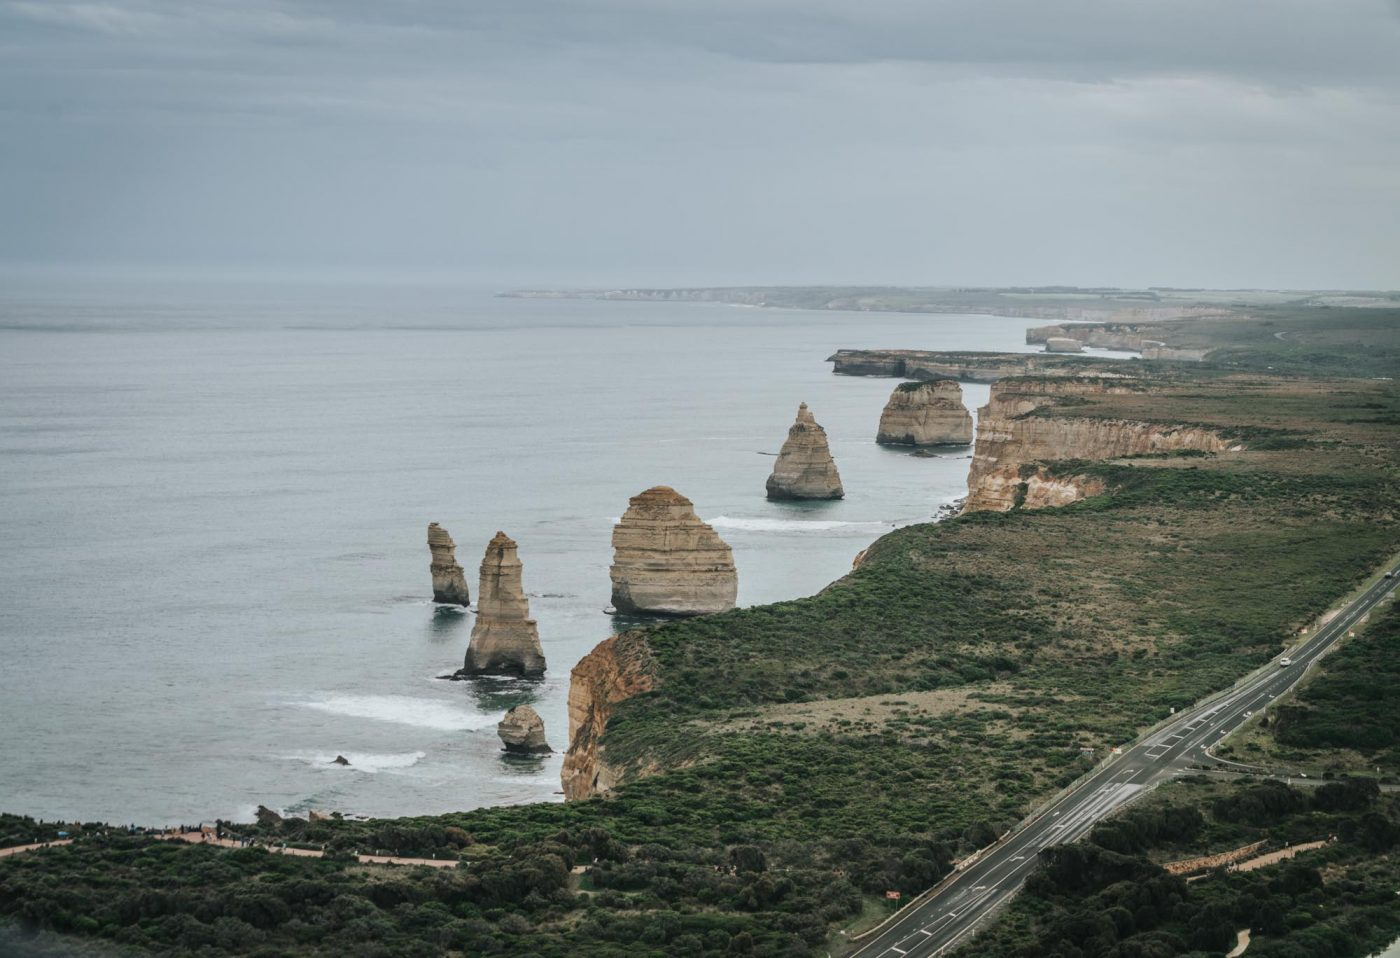 Admiring the Twelve Apostles from above!